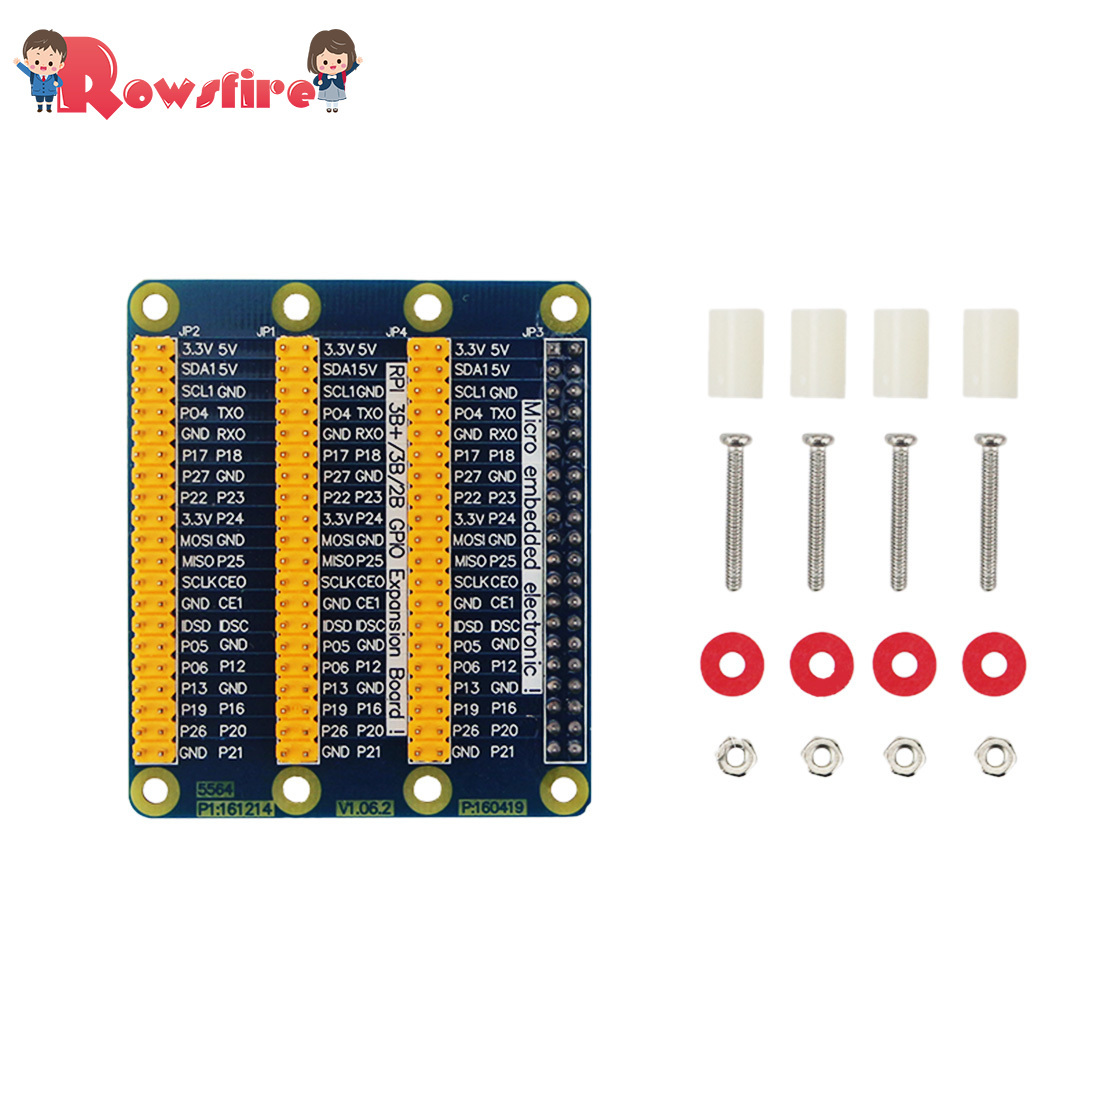 3 In 1 GPIO Expansion Board External Connection GPIO Expansion Board For Raspberry Pi 3B+/3B/2B